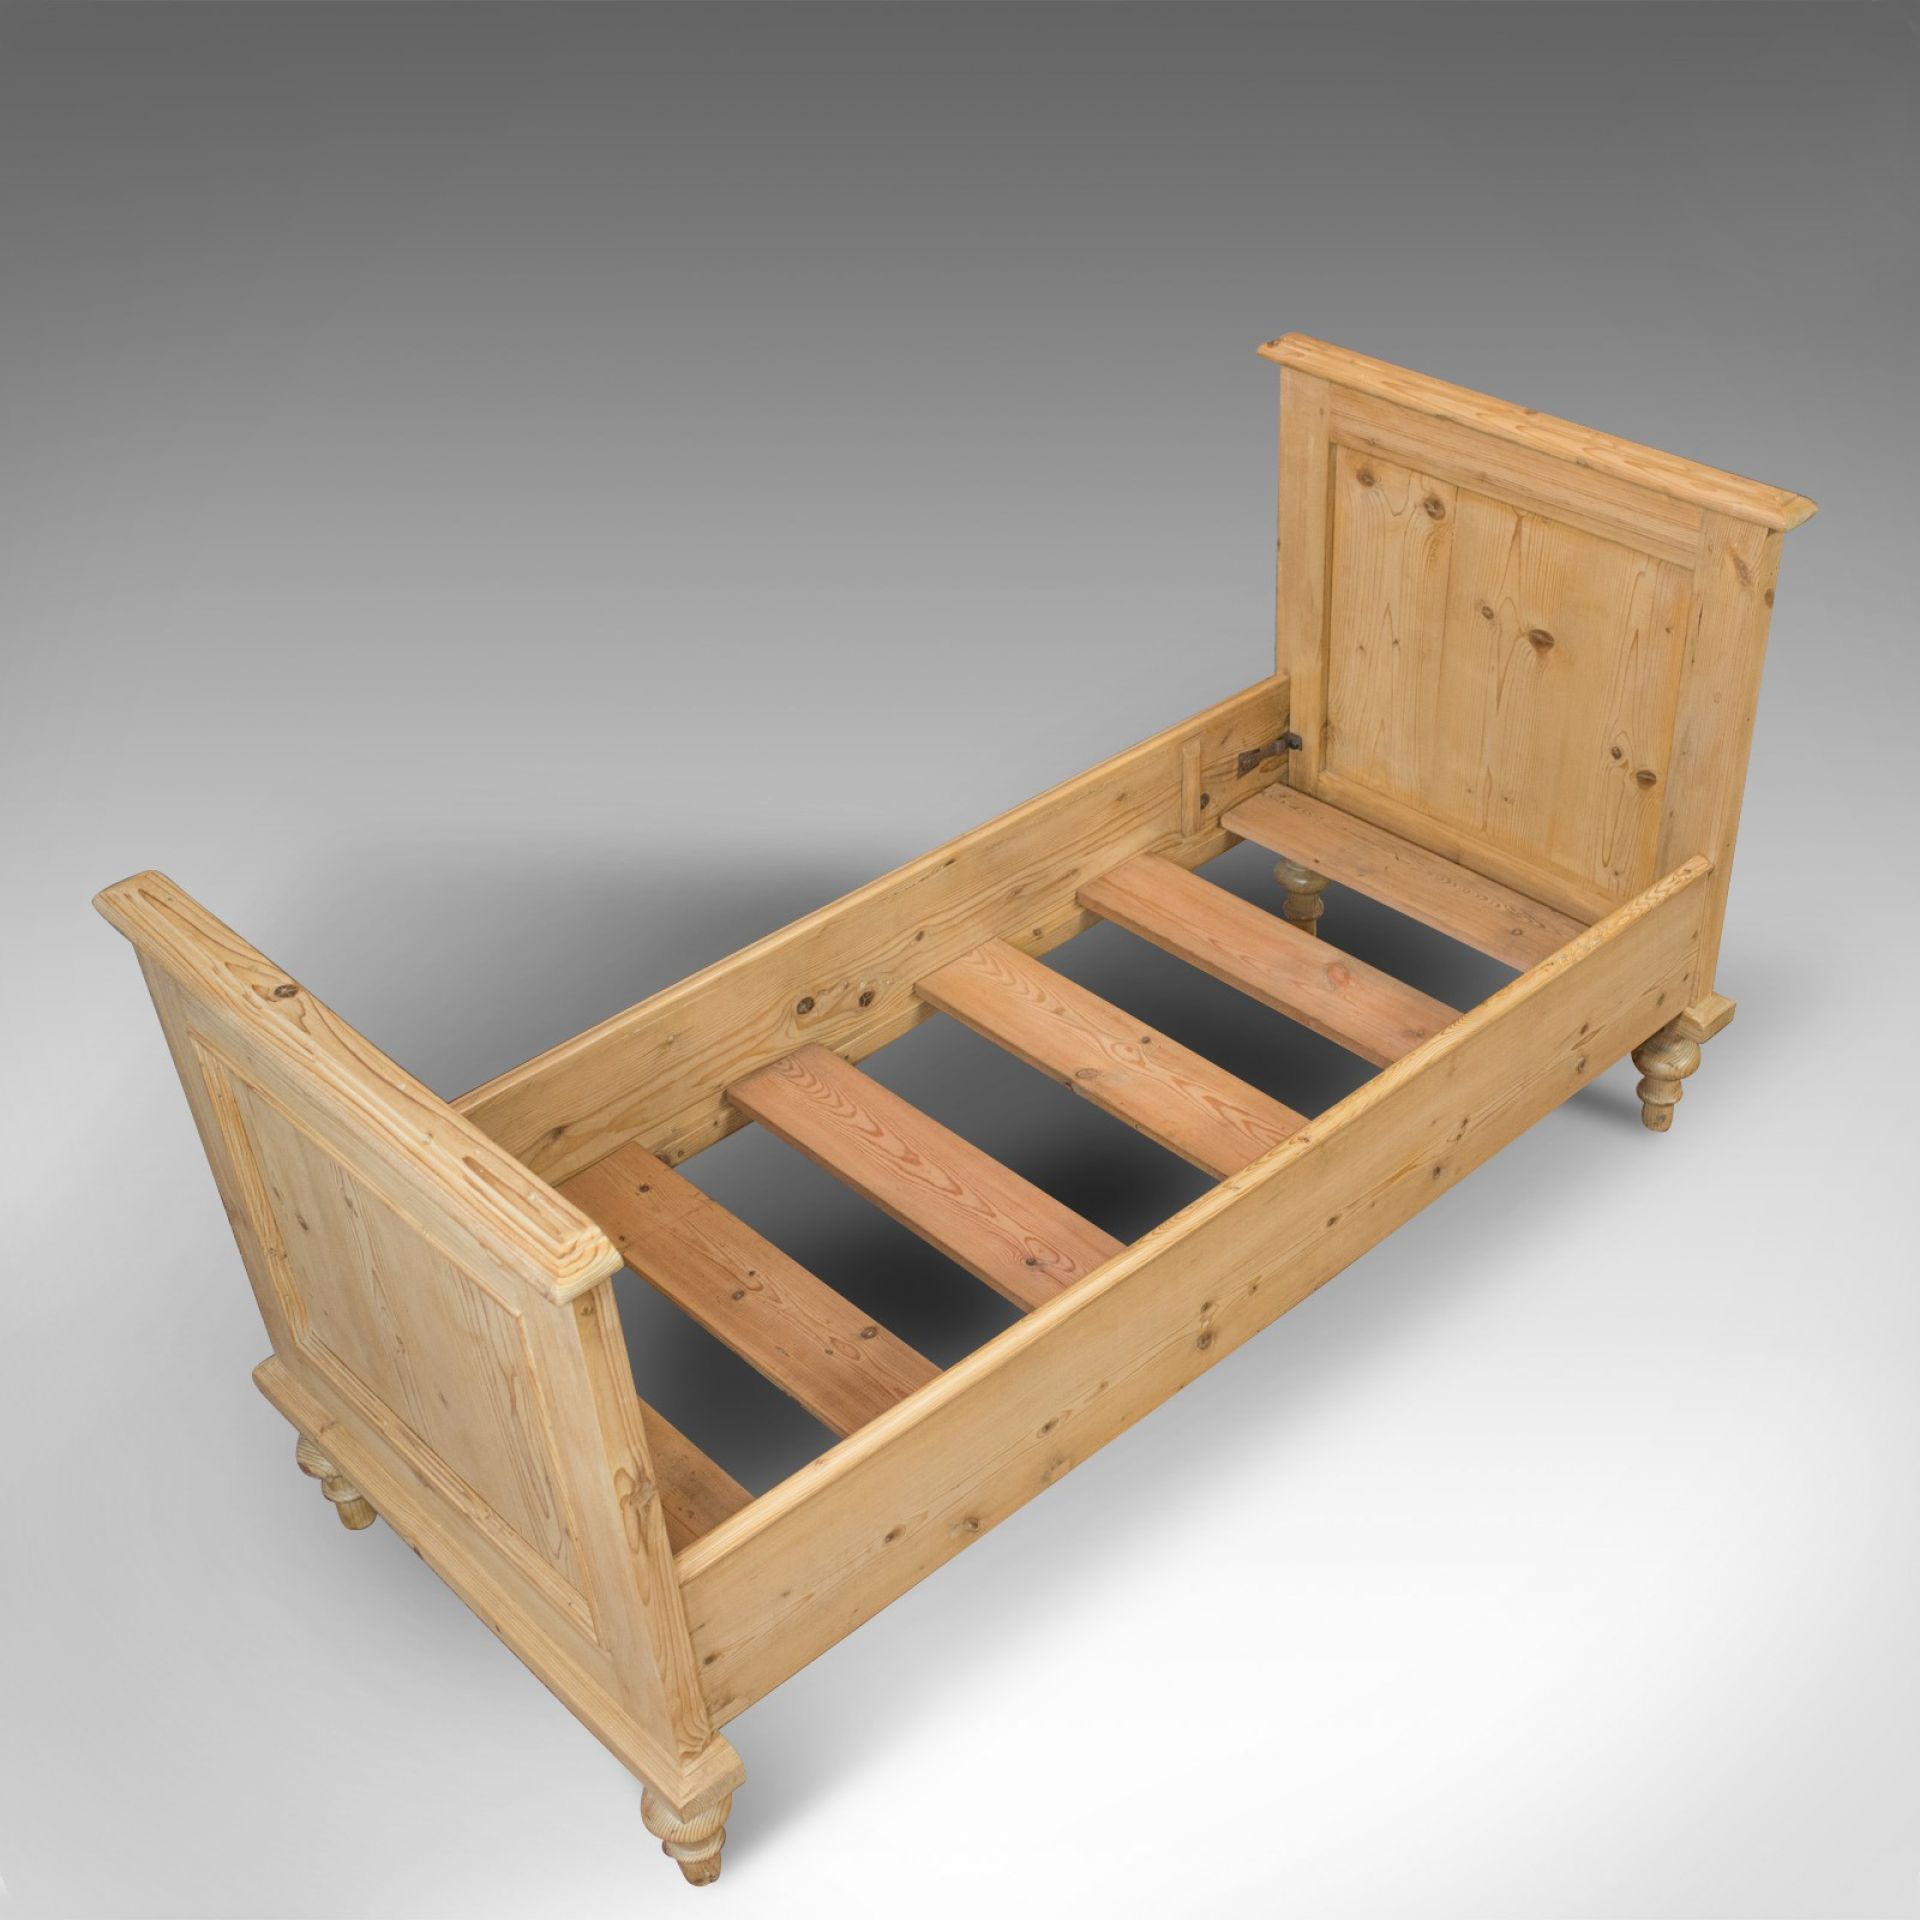 Antique Bed Frame, English, Victorian, Pine, Bedstead, Late 19th Century, C.1900